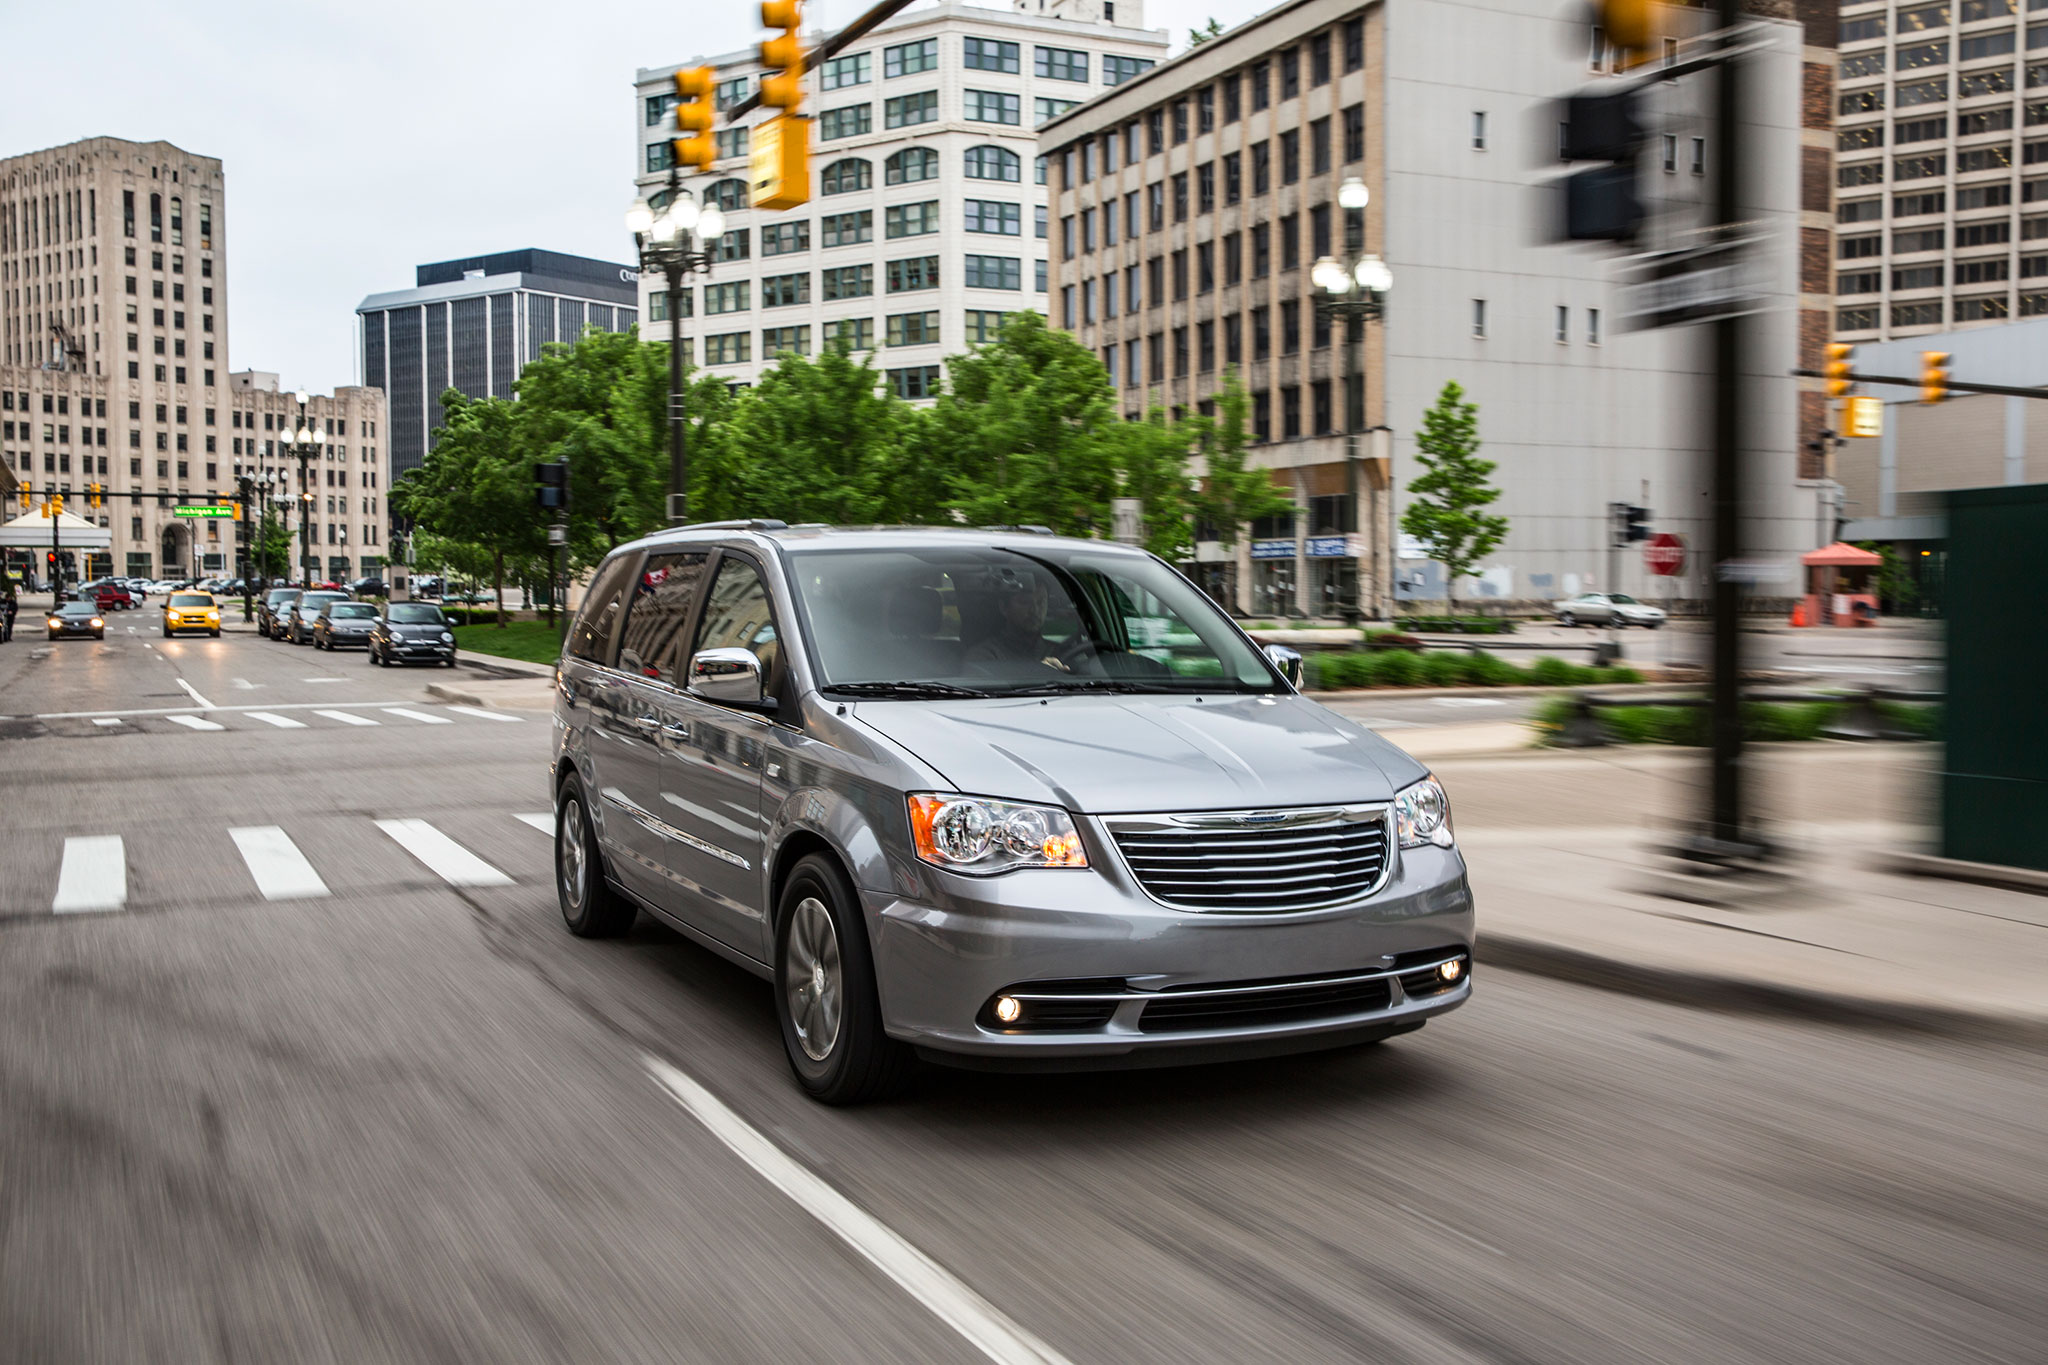 2014-chrysler-town-and-country-30th-anniversary-edition-front-passengers-side-in-motion